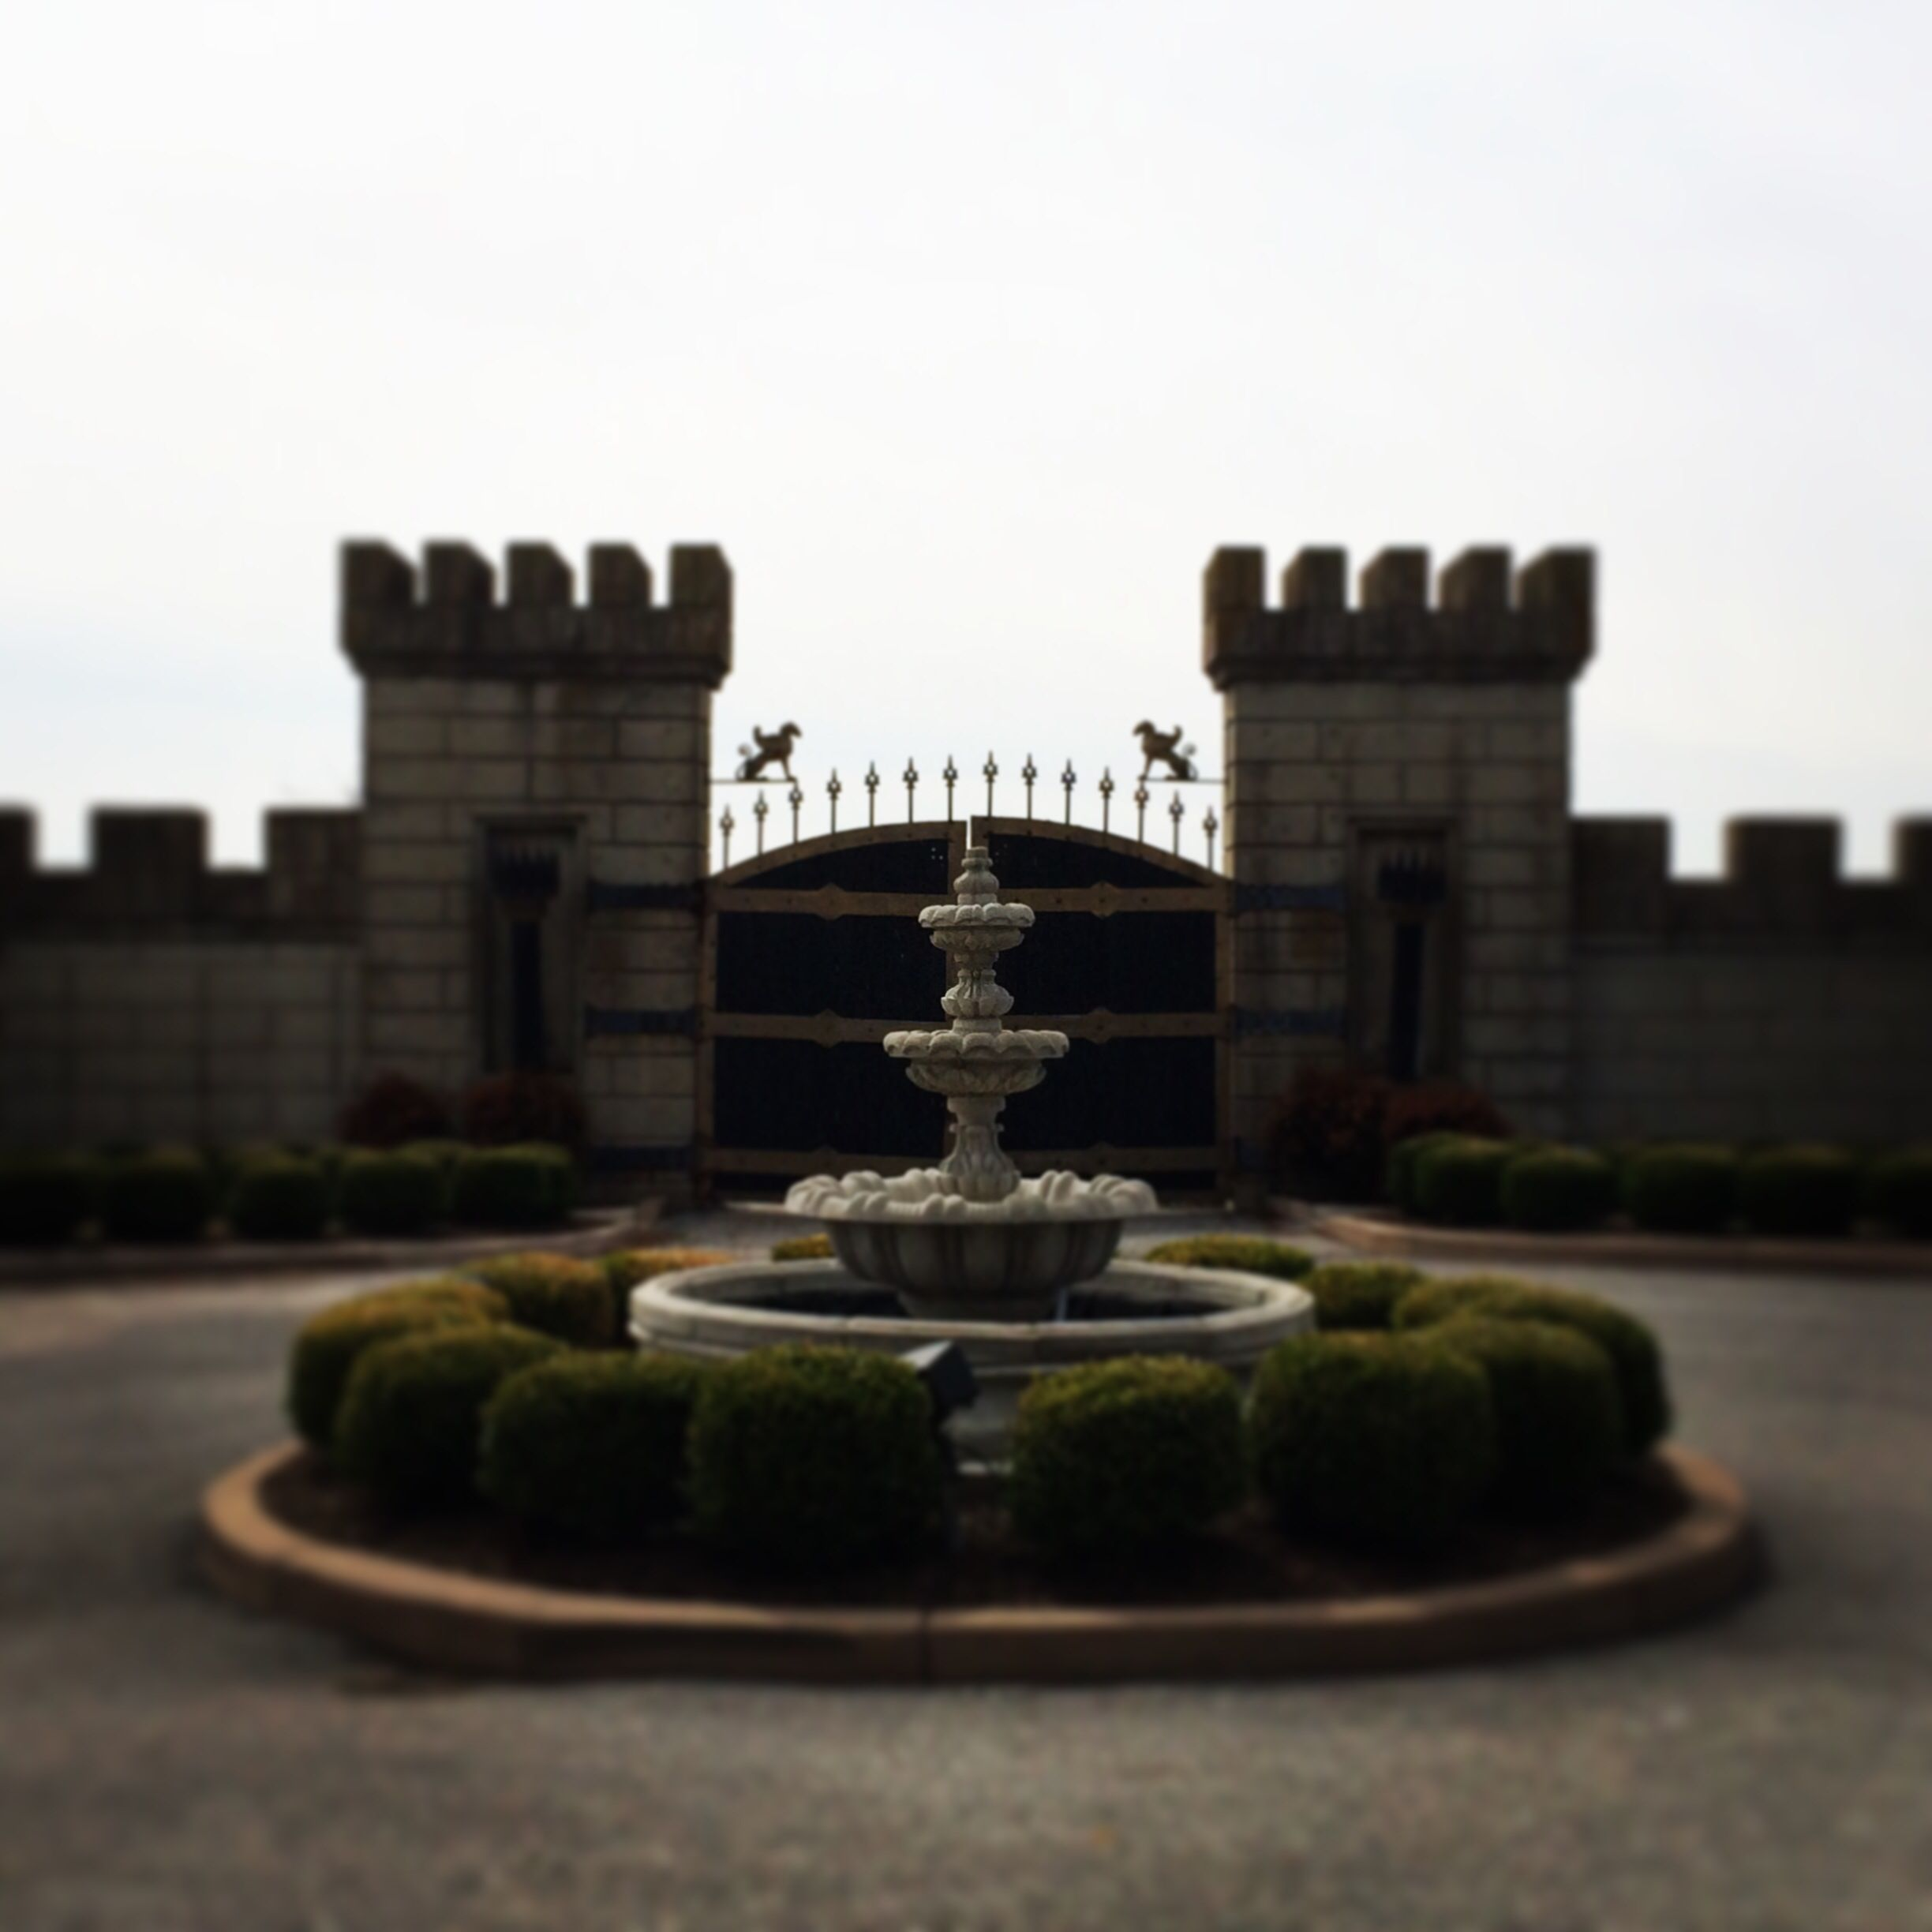 Daily dream home your private castle hotel in versailles kentucky - The Castle Post Versailles Ky Wedding Venue